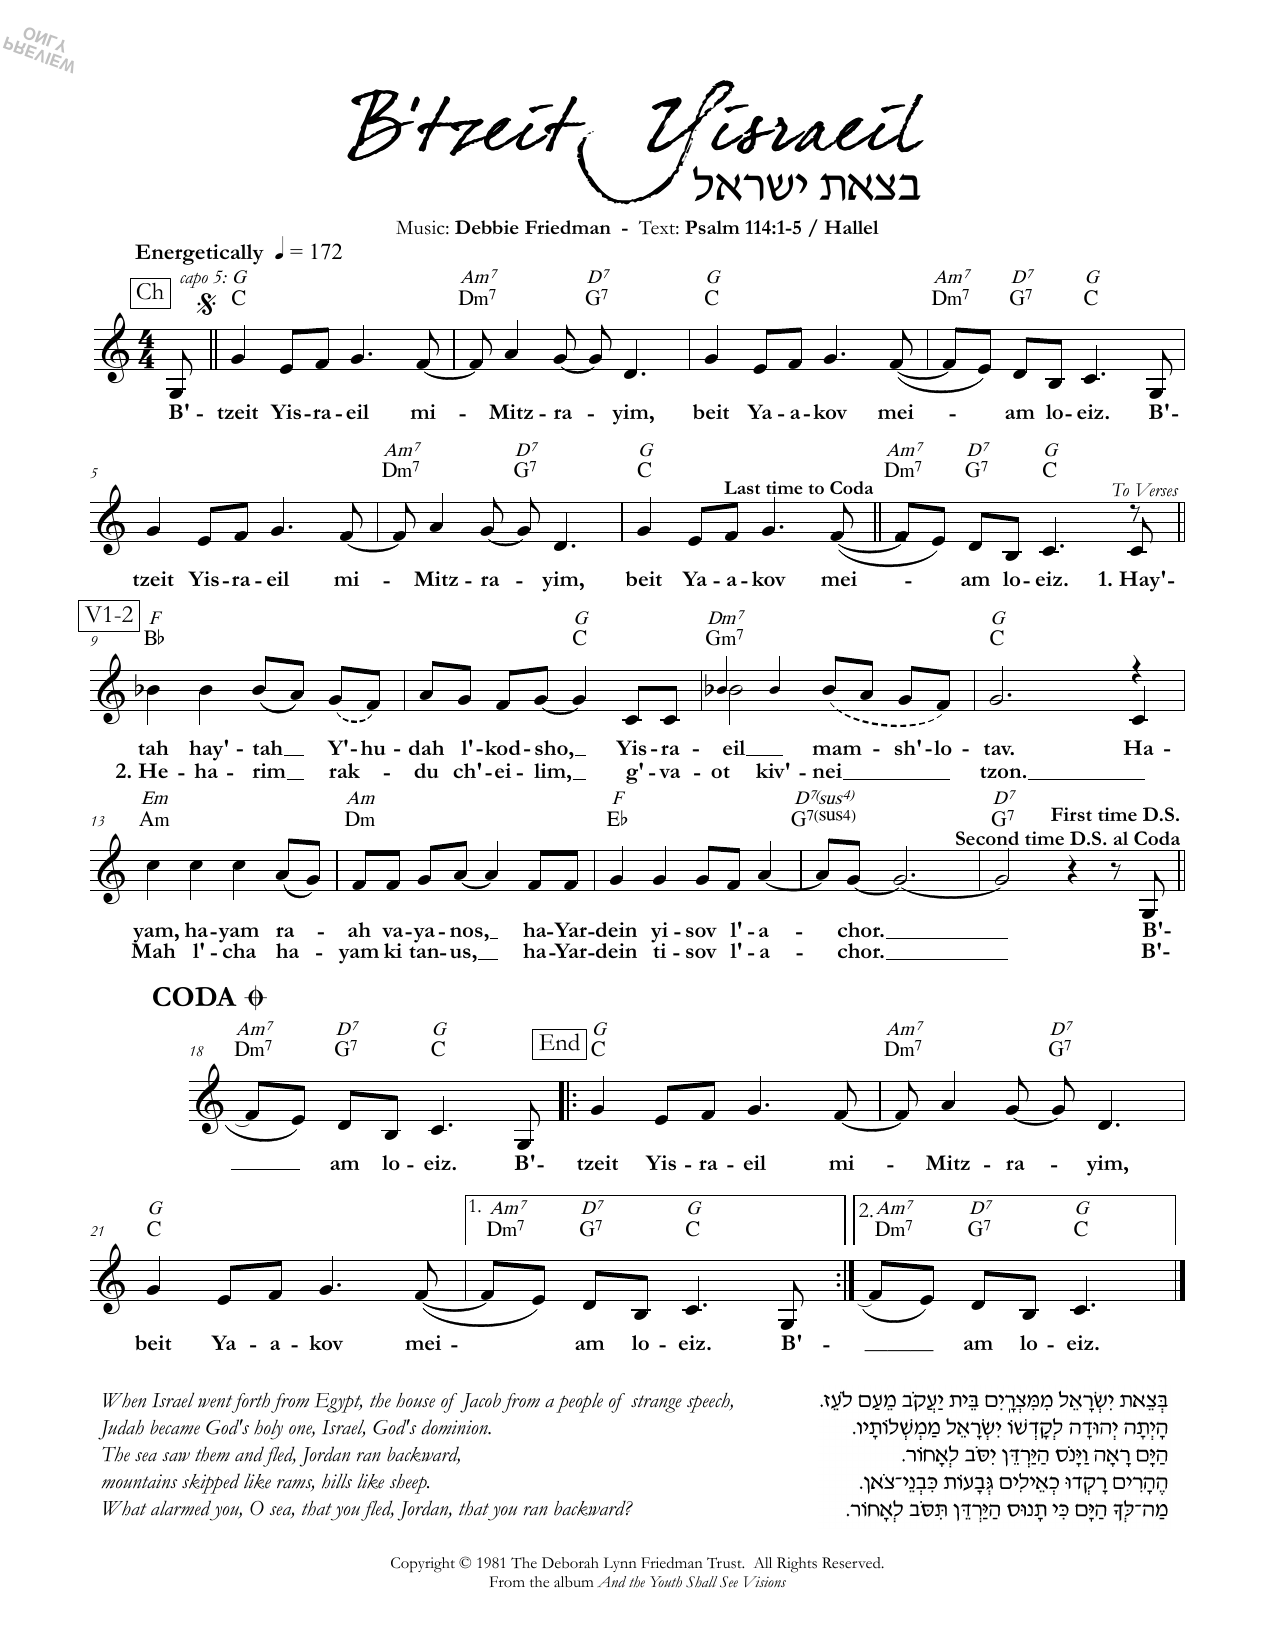 B'tzeit Yisraeil Sheet Music